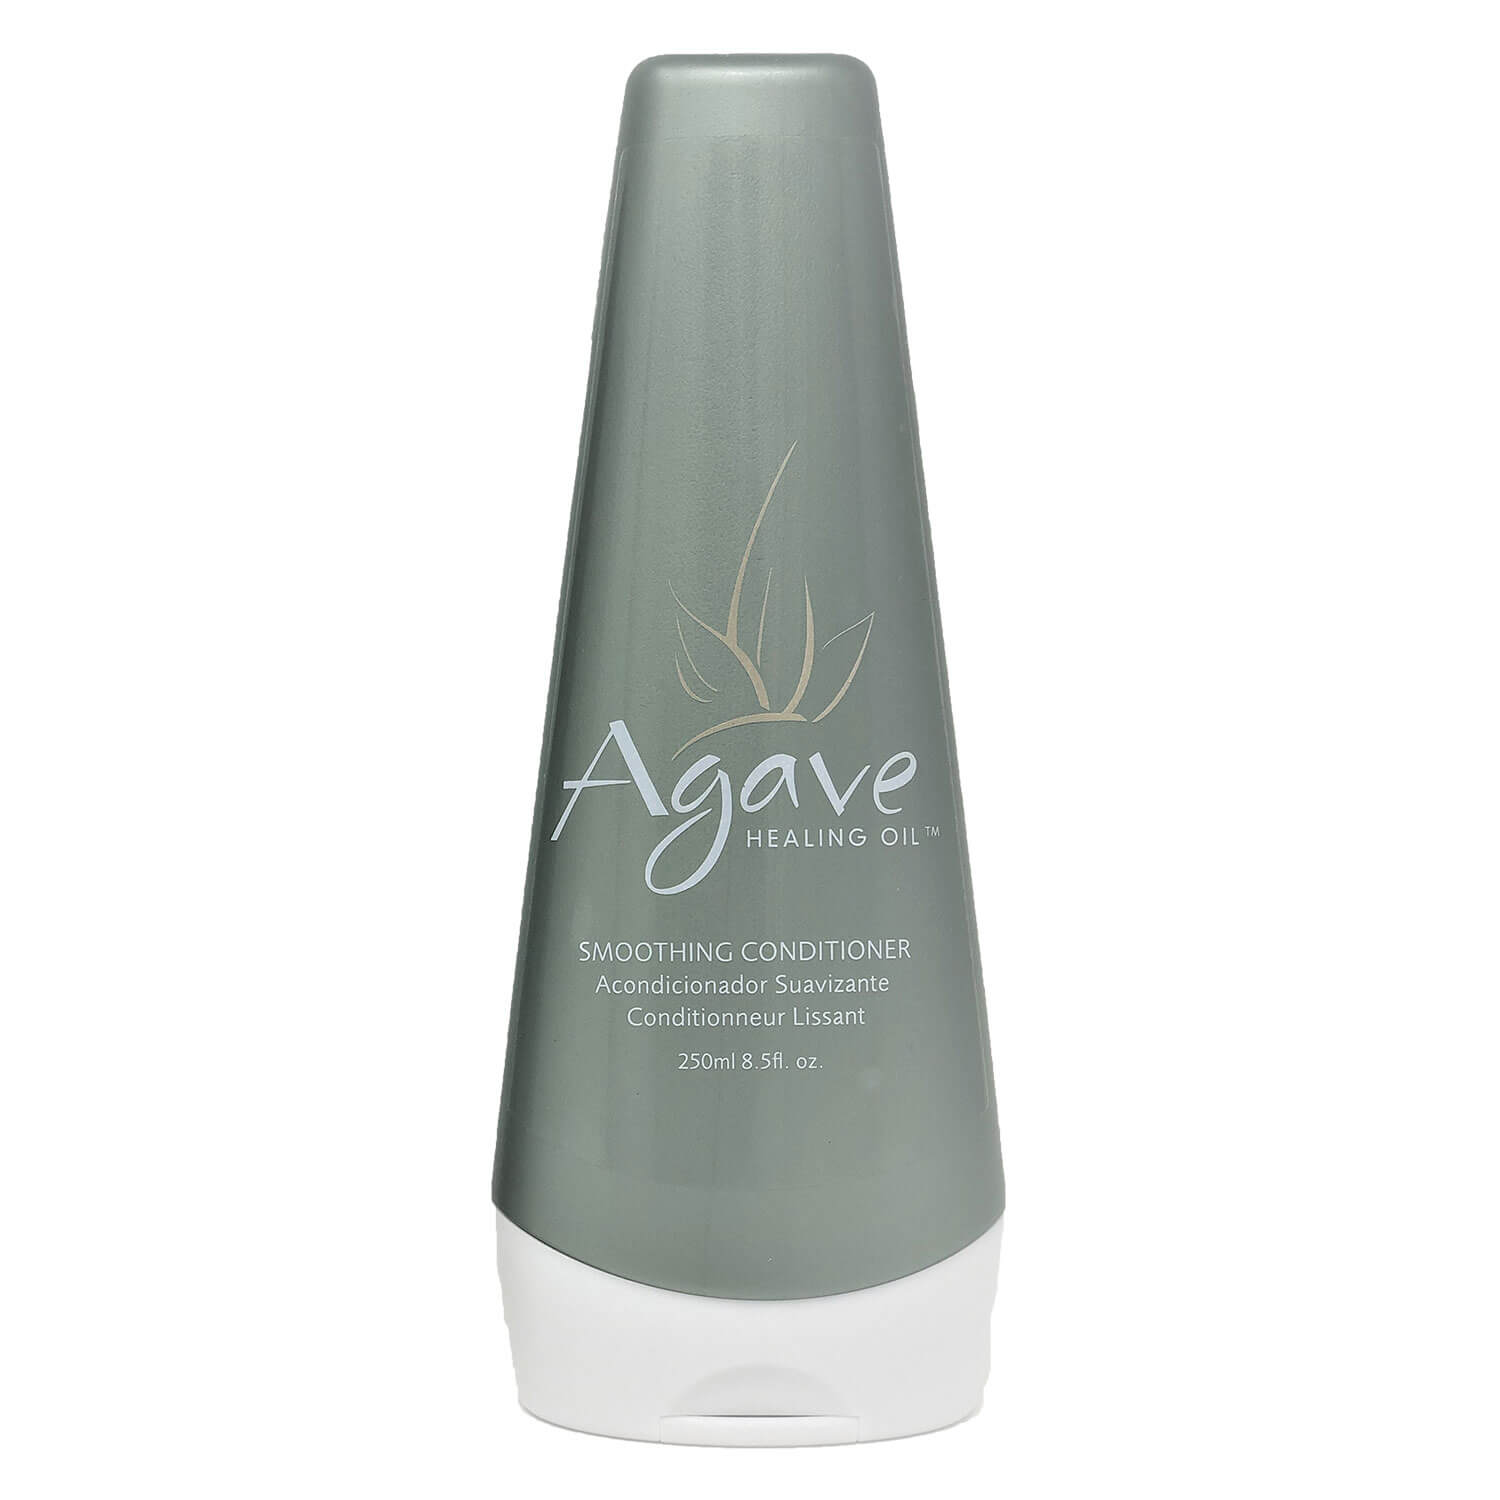 Agave - Smoothing Conditioner - 250ml